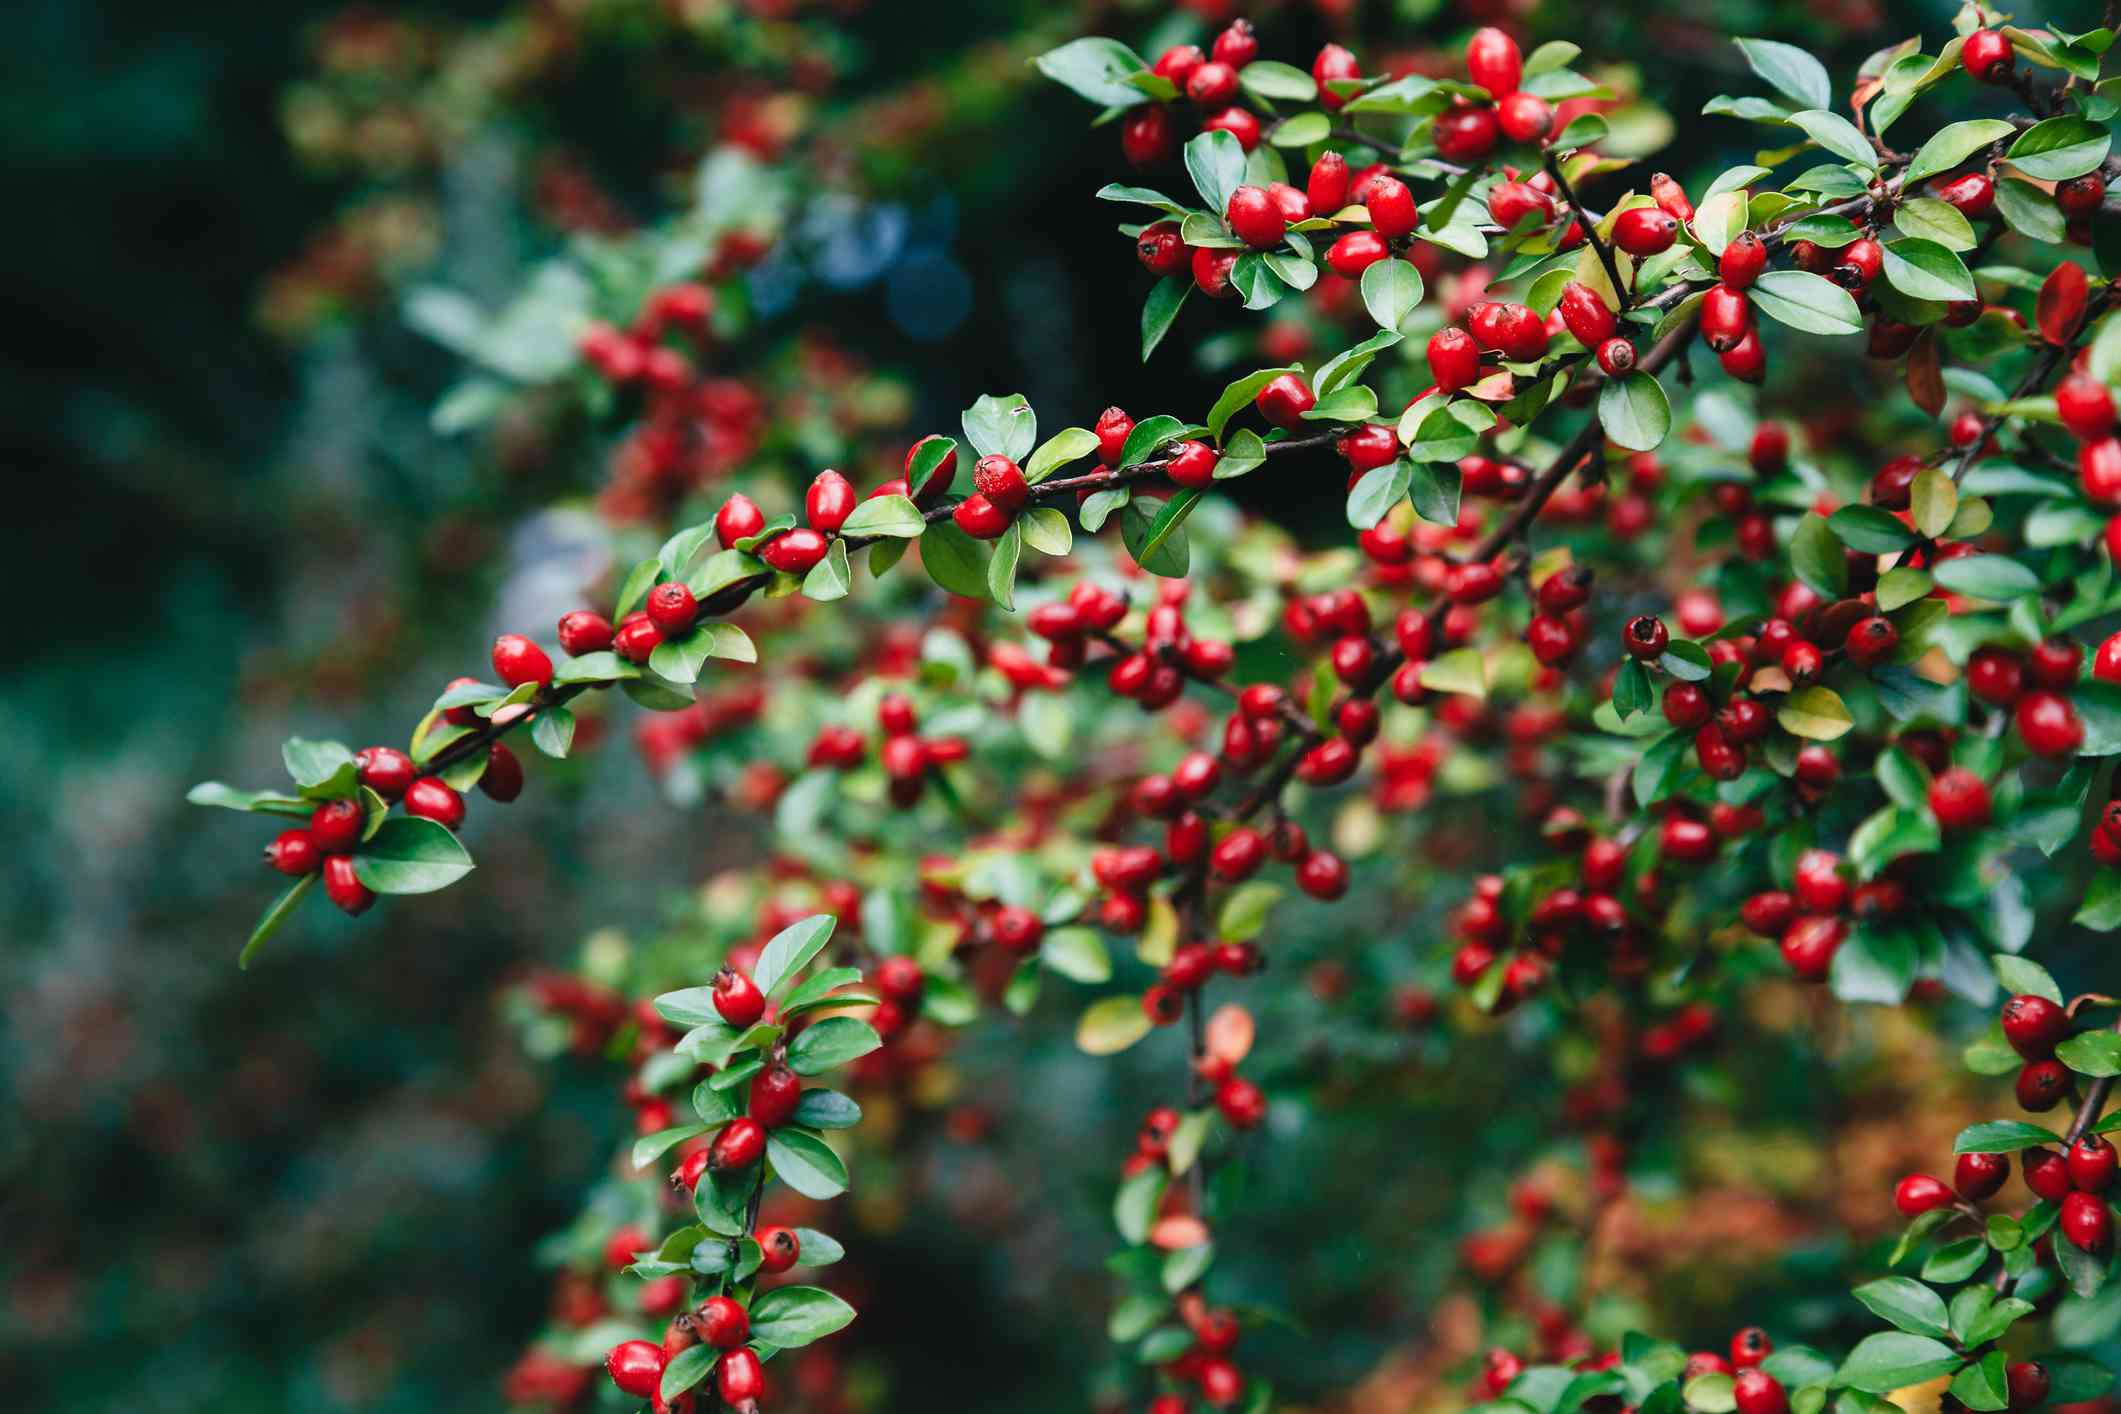 Cotoneaster bush with small red berries and glossy green leaves